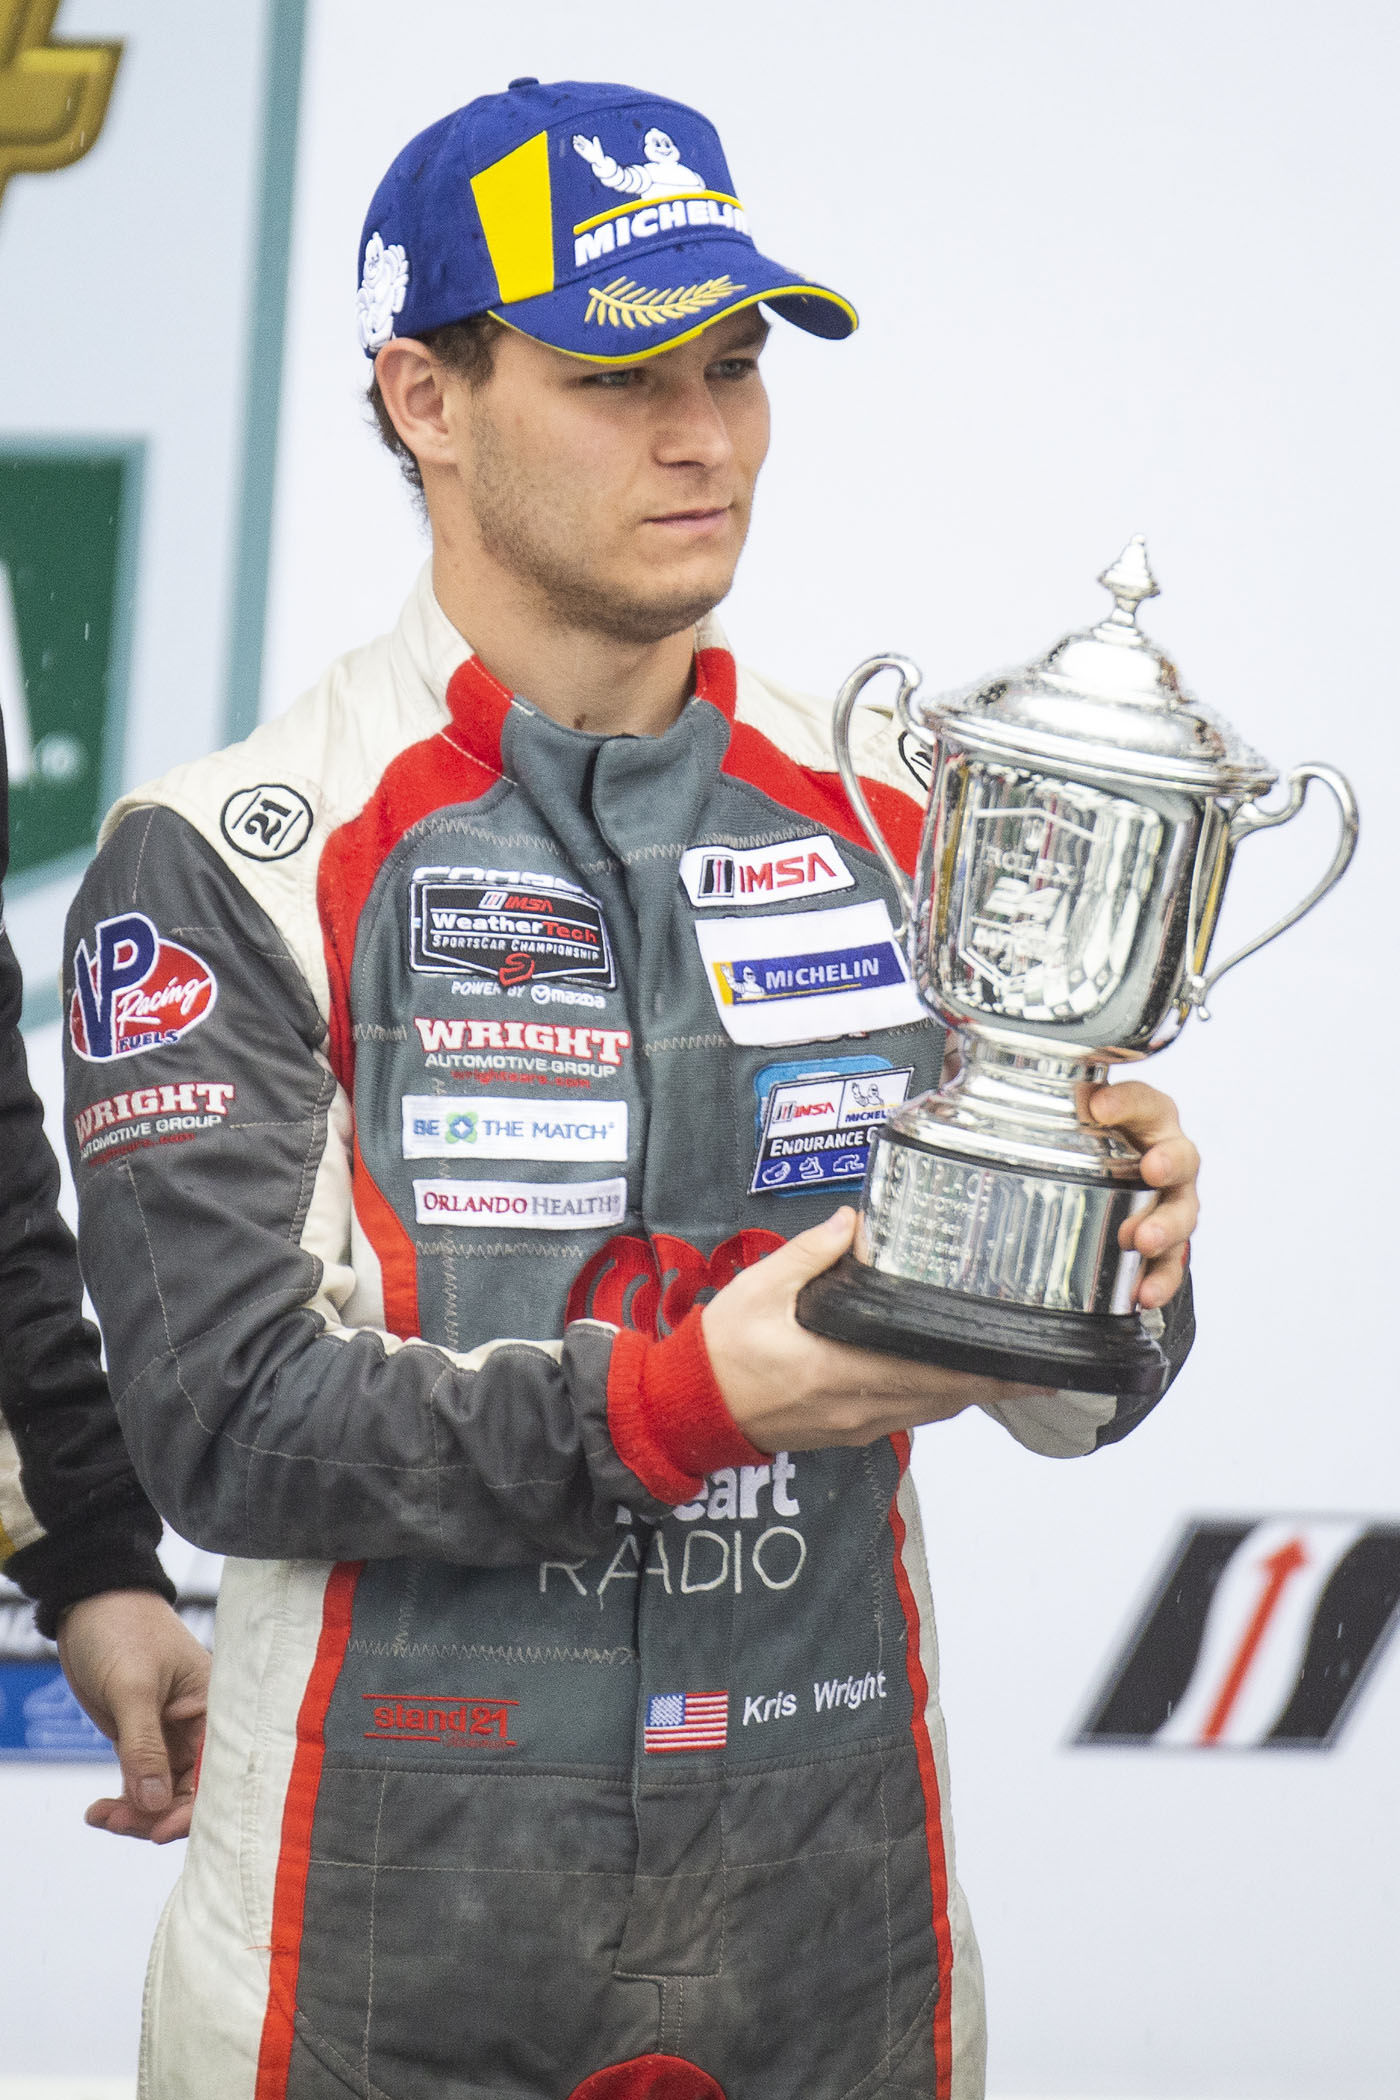 KrisWright-2ndTrophy-Daytona-2019.jpg